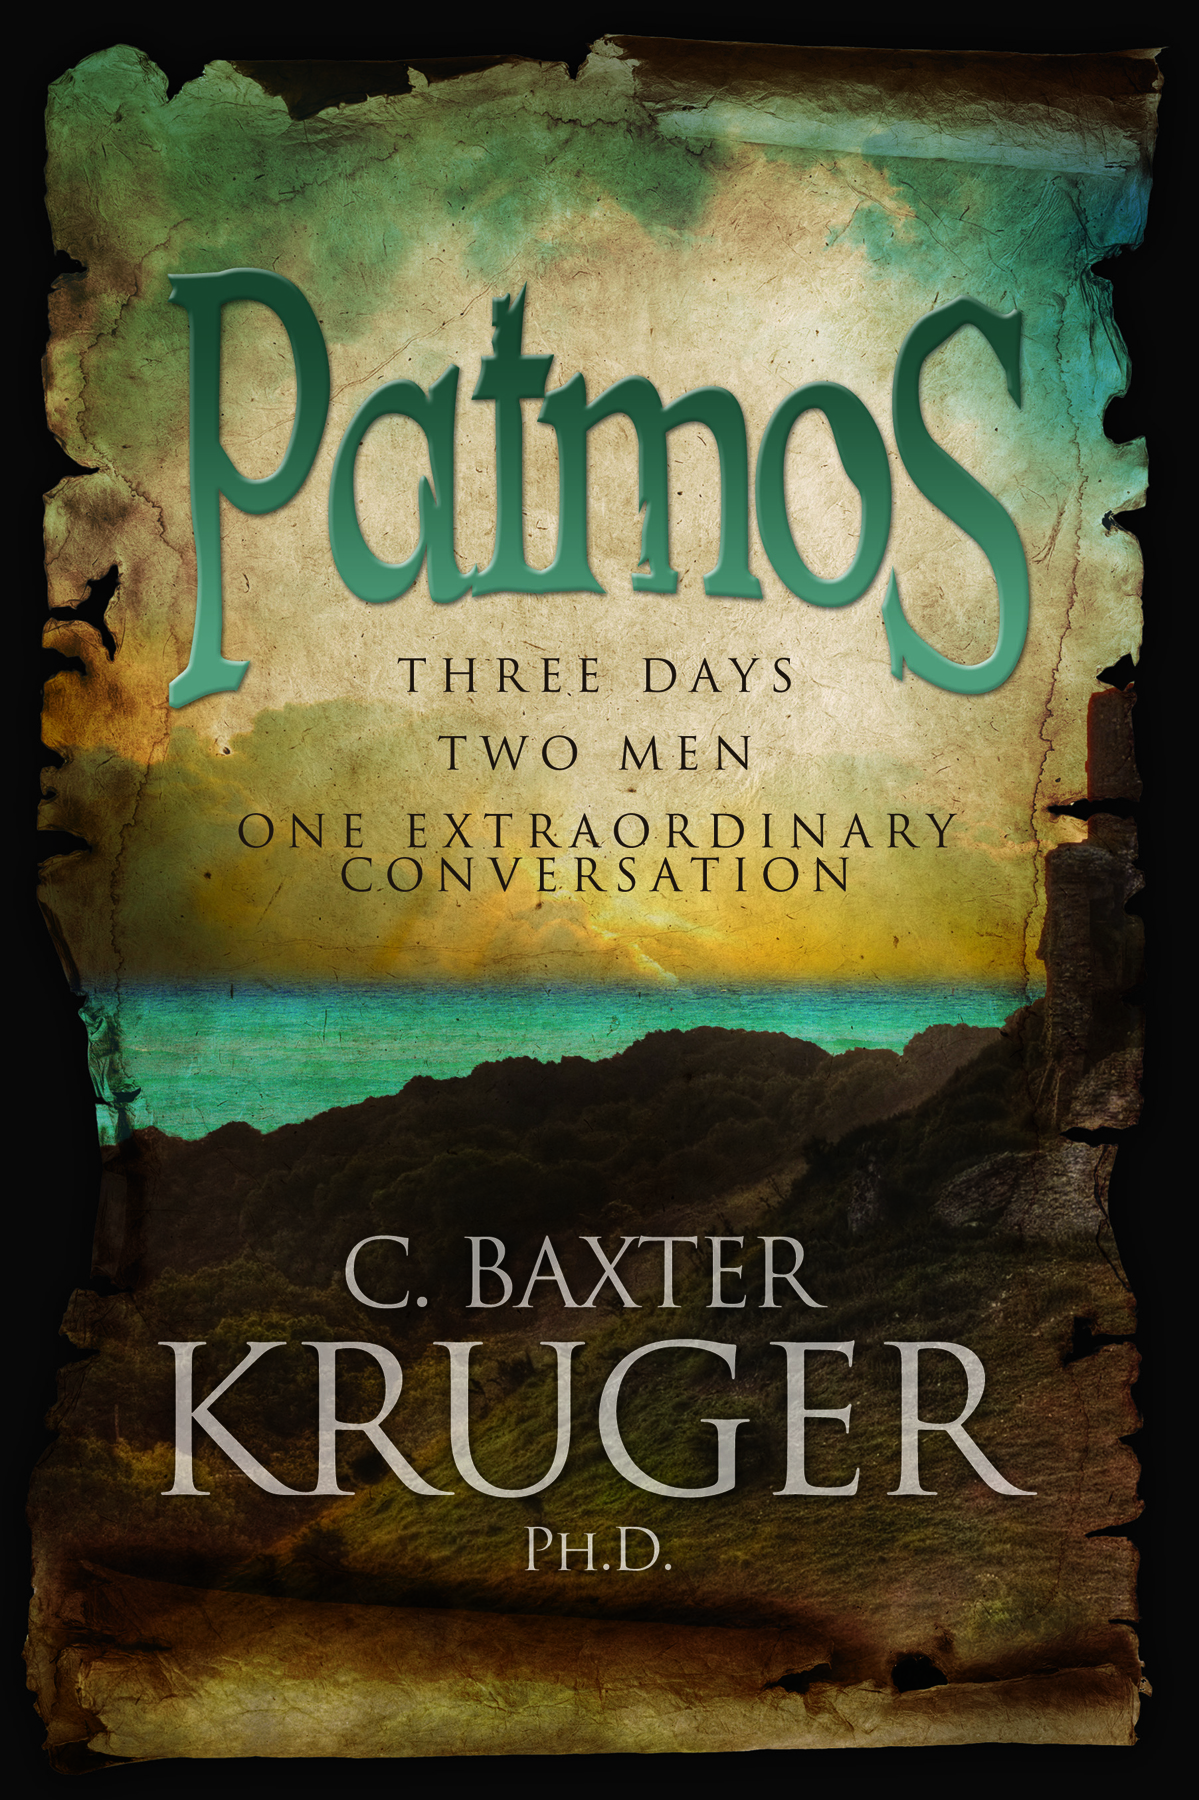 Patmos by C. Baxter Kruger